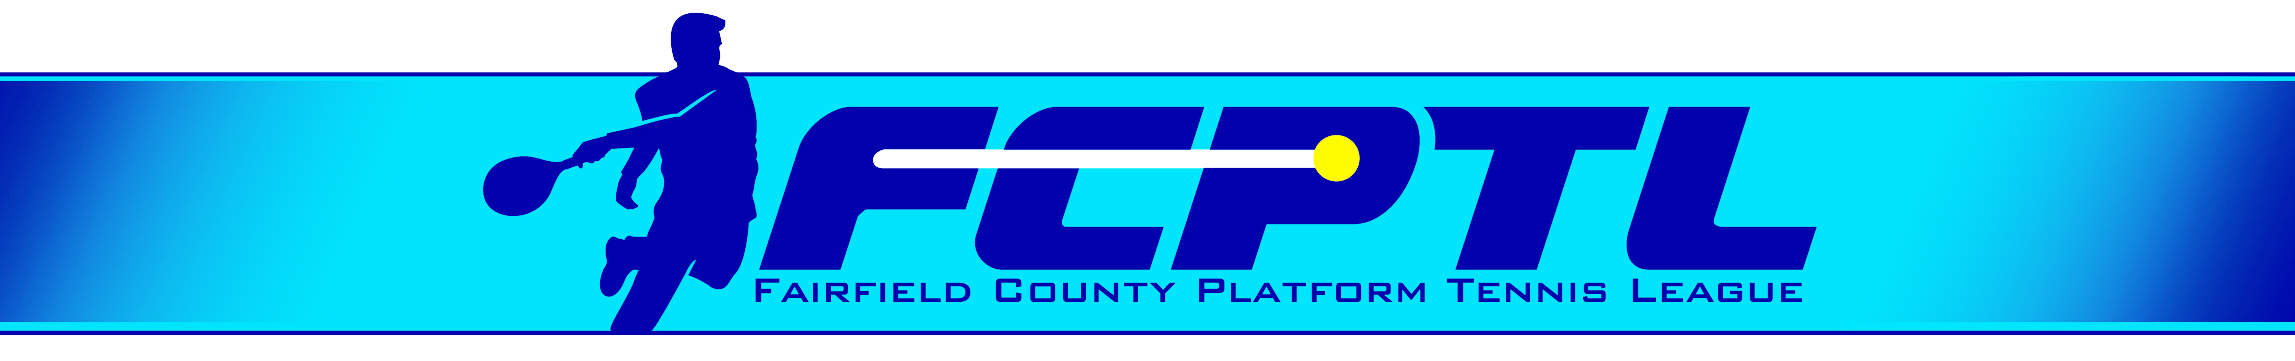 Fairfield County Platform Tennis League, Platform Tennis, Point, Court